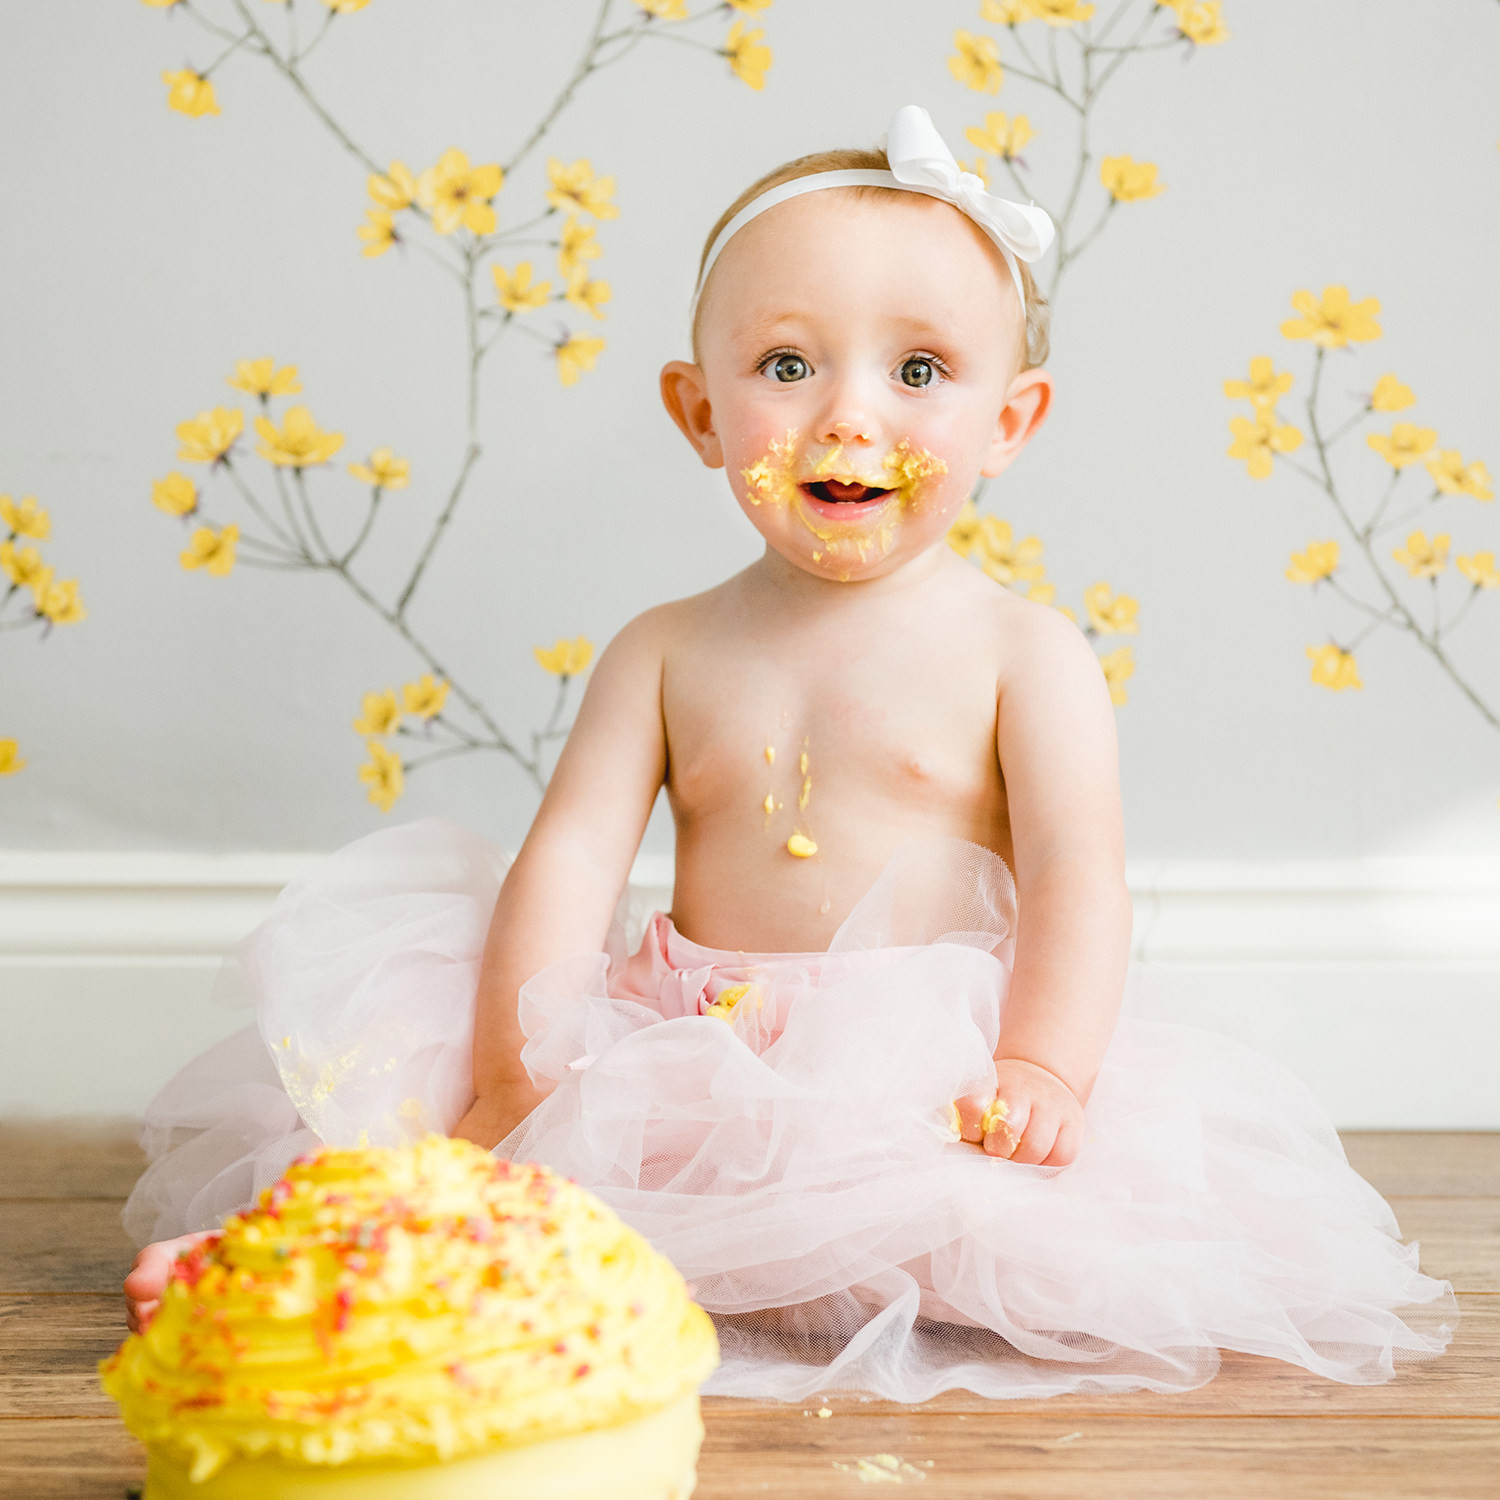 Cake Smash Baby Portrait Photography.jpg